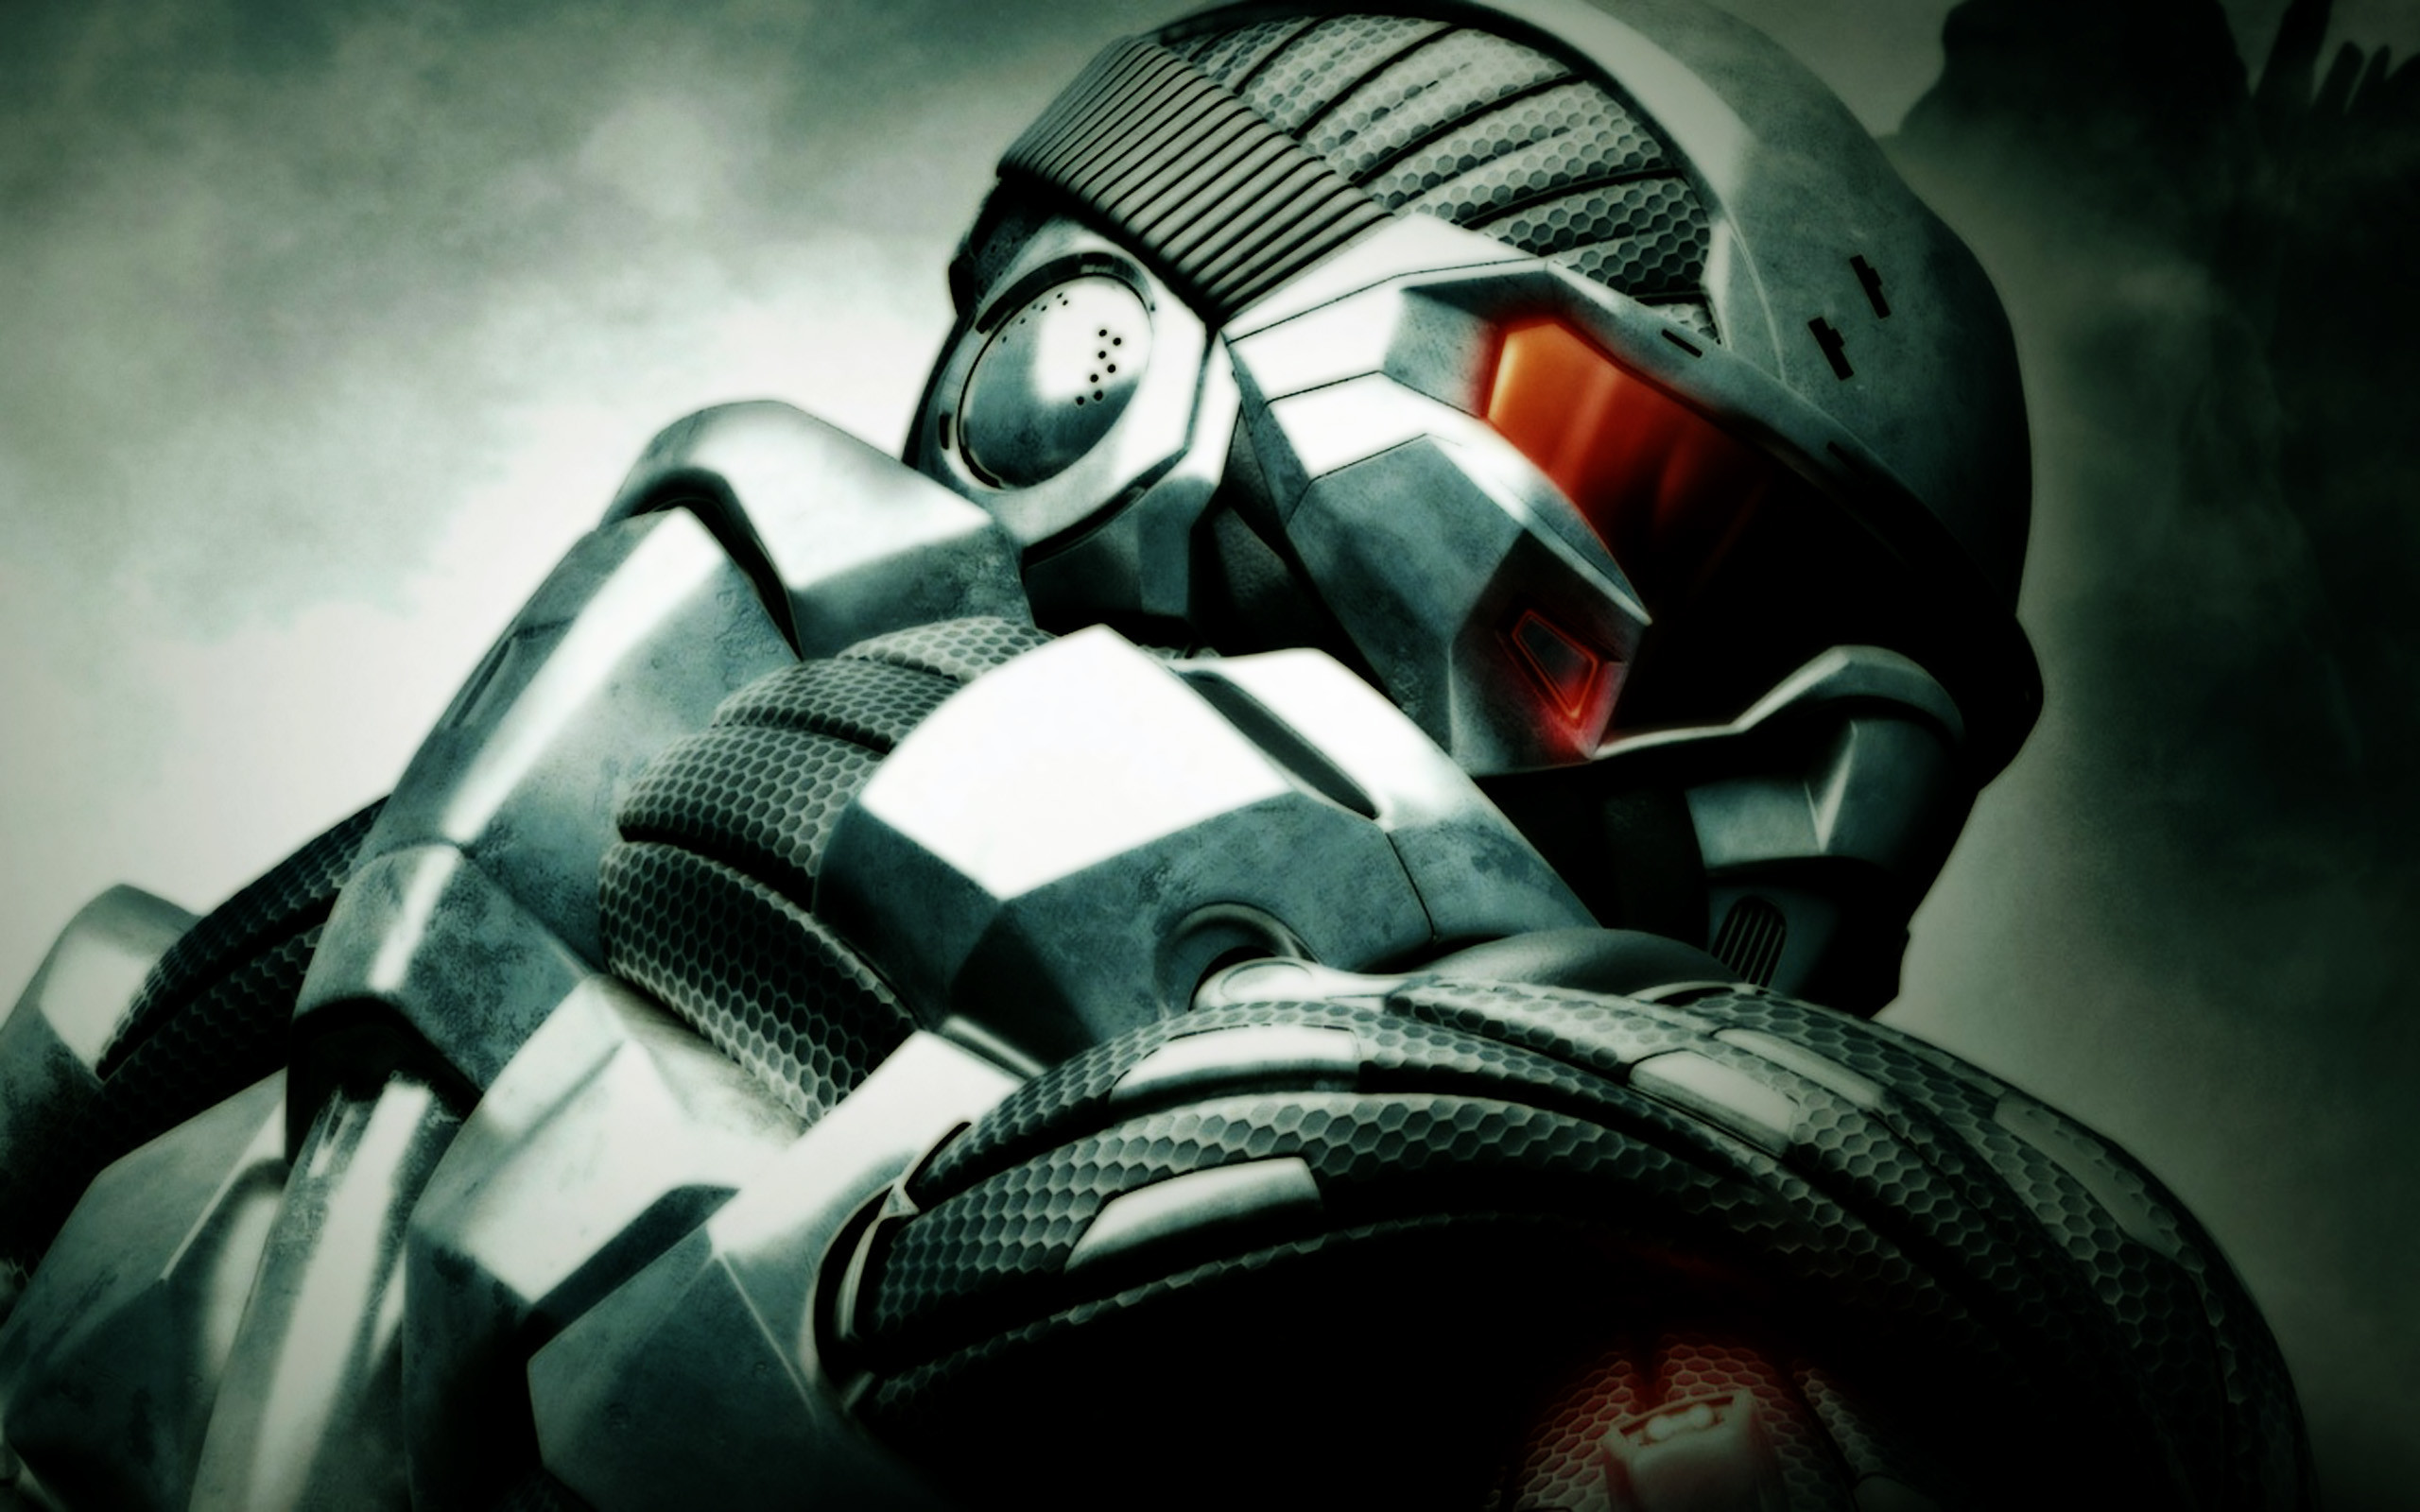 2560x1600 Awesome HD Robot Wallpapers & Backgrounds For Free Download